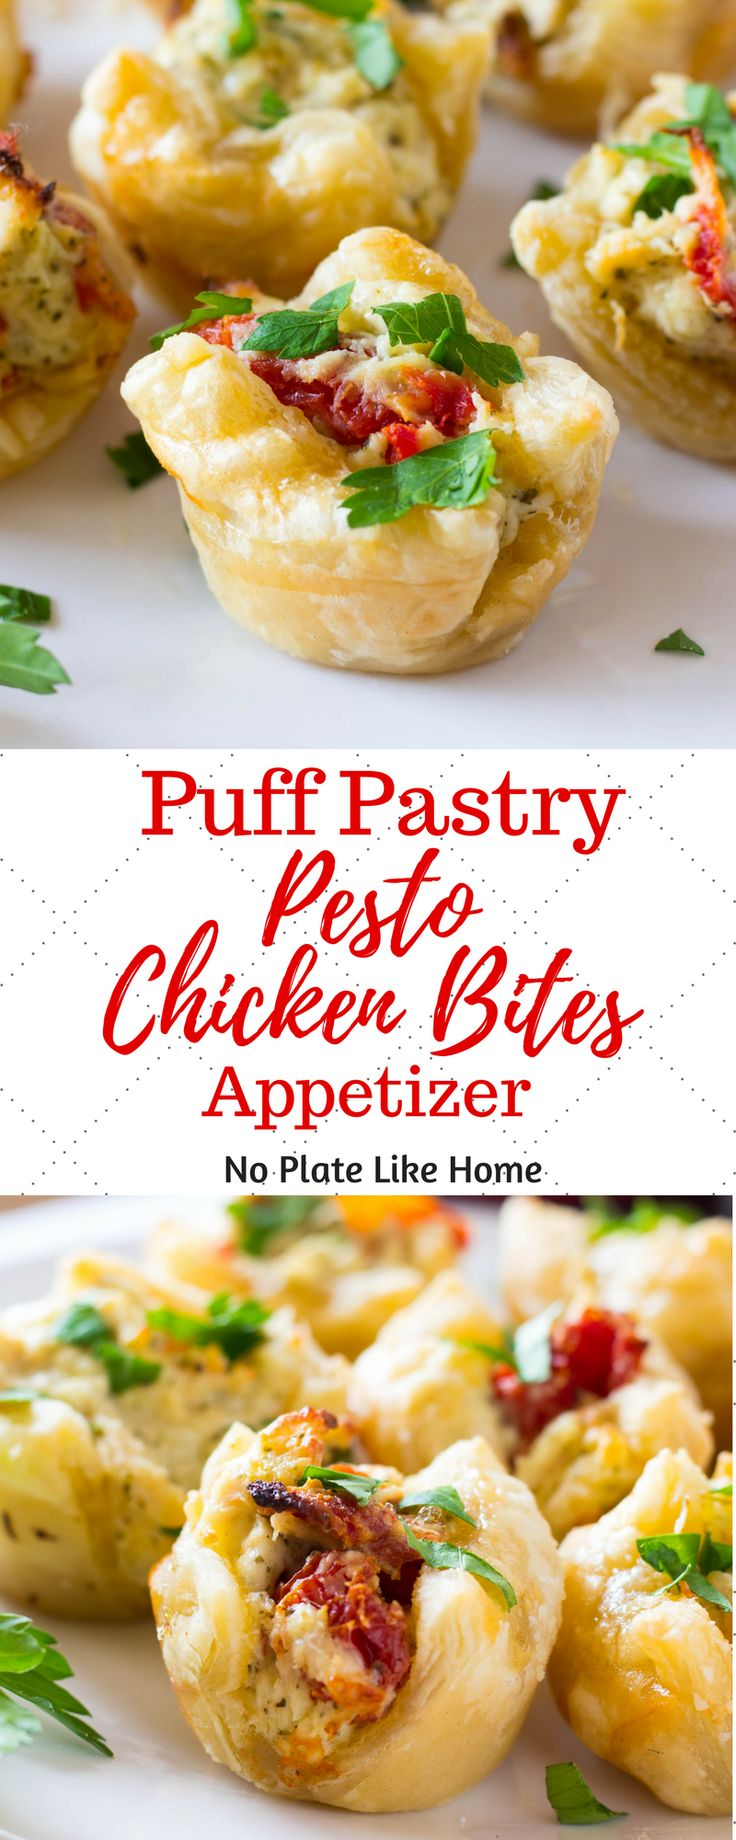 Puff Pastry Pesto Chicken Bites Appetizer is a delicious hot hors d'ouevres to serve your party guests. They are flavorful and filling so you won't have to make a lot of apps. Easy-to-make in just 30 min with leftover chicken. Pin for later.